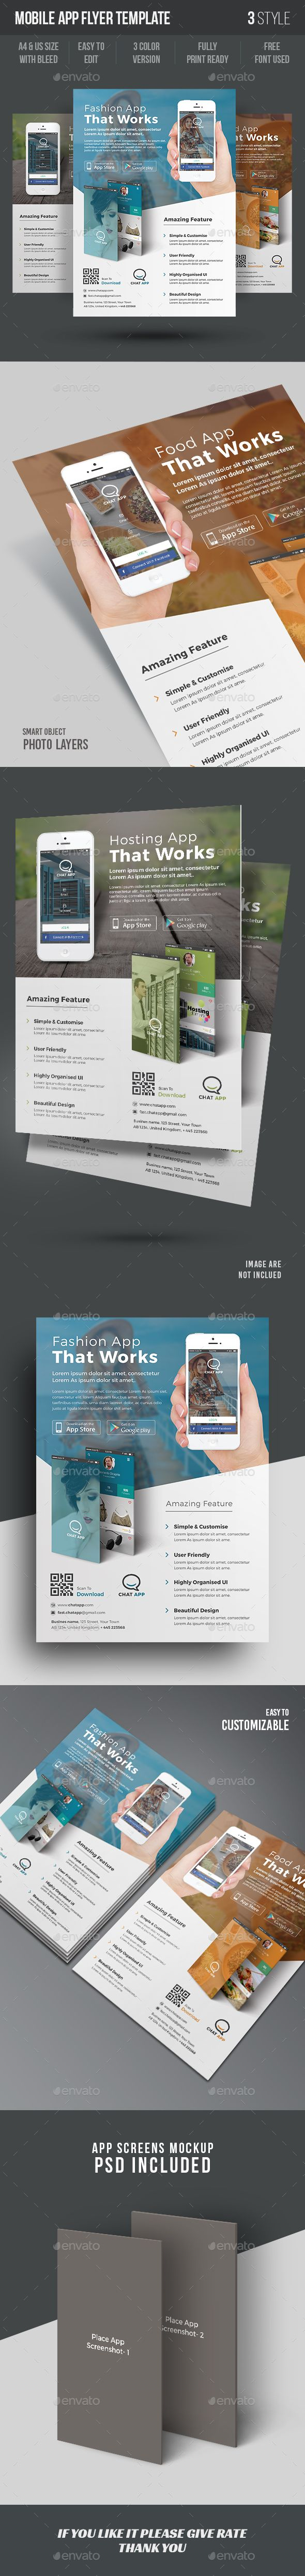 Mobile App Flyer Template — Photoshop PSD #mobile app flyer template #adverts • Available here → https://graphicriver.net/item/mobile-app-flyer-template/15286312?ref=pxcr